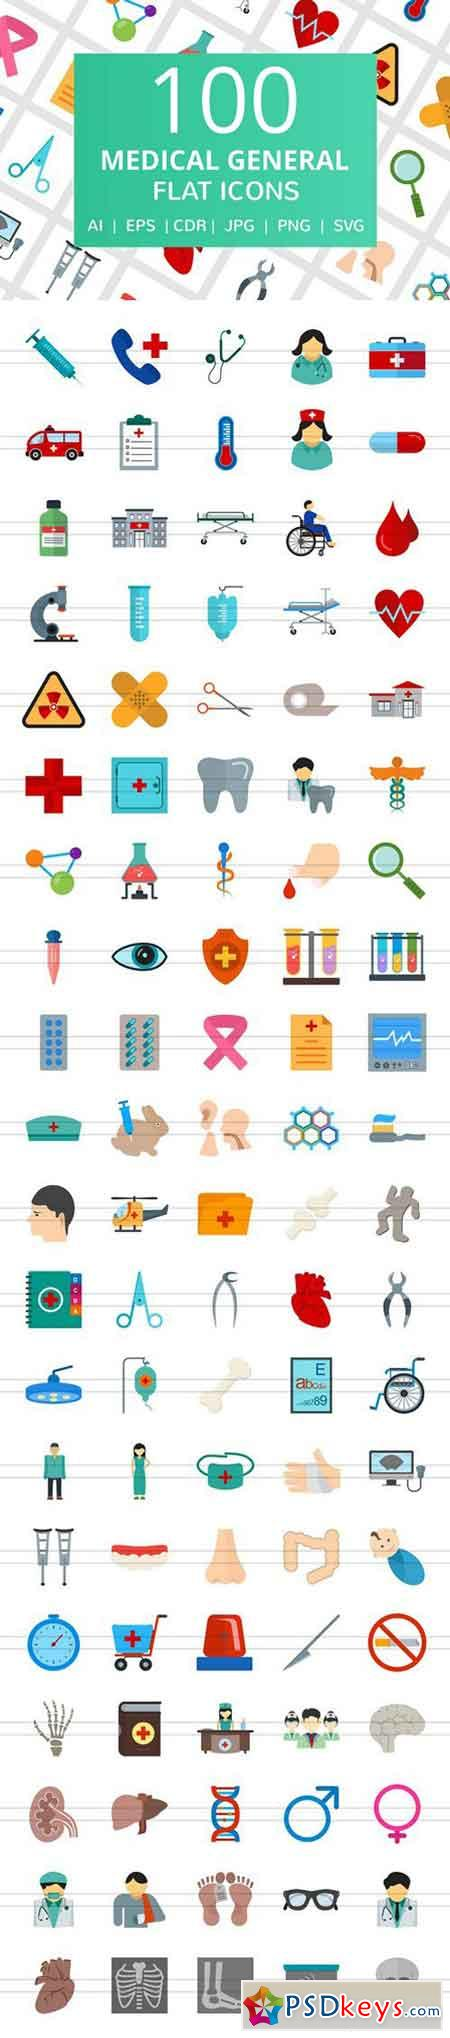 100 Medical General Flat Icons 2185400